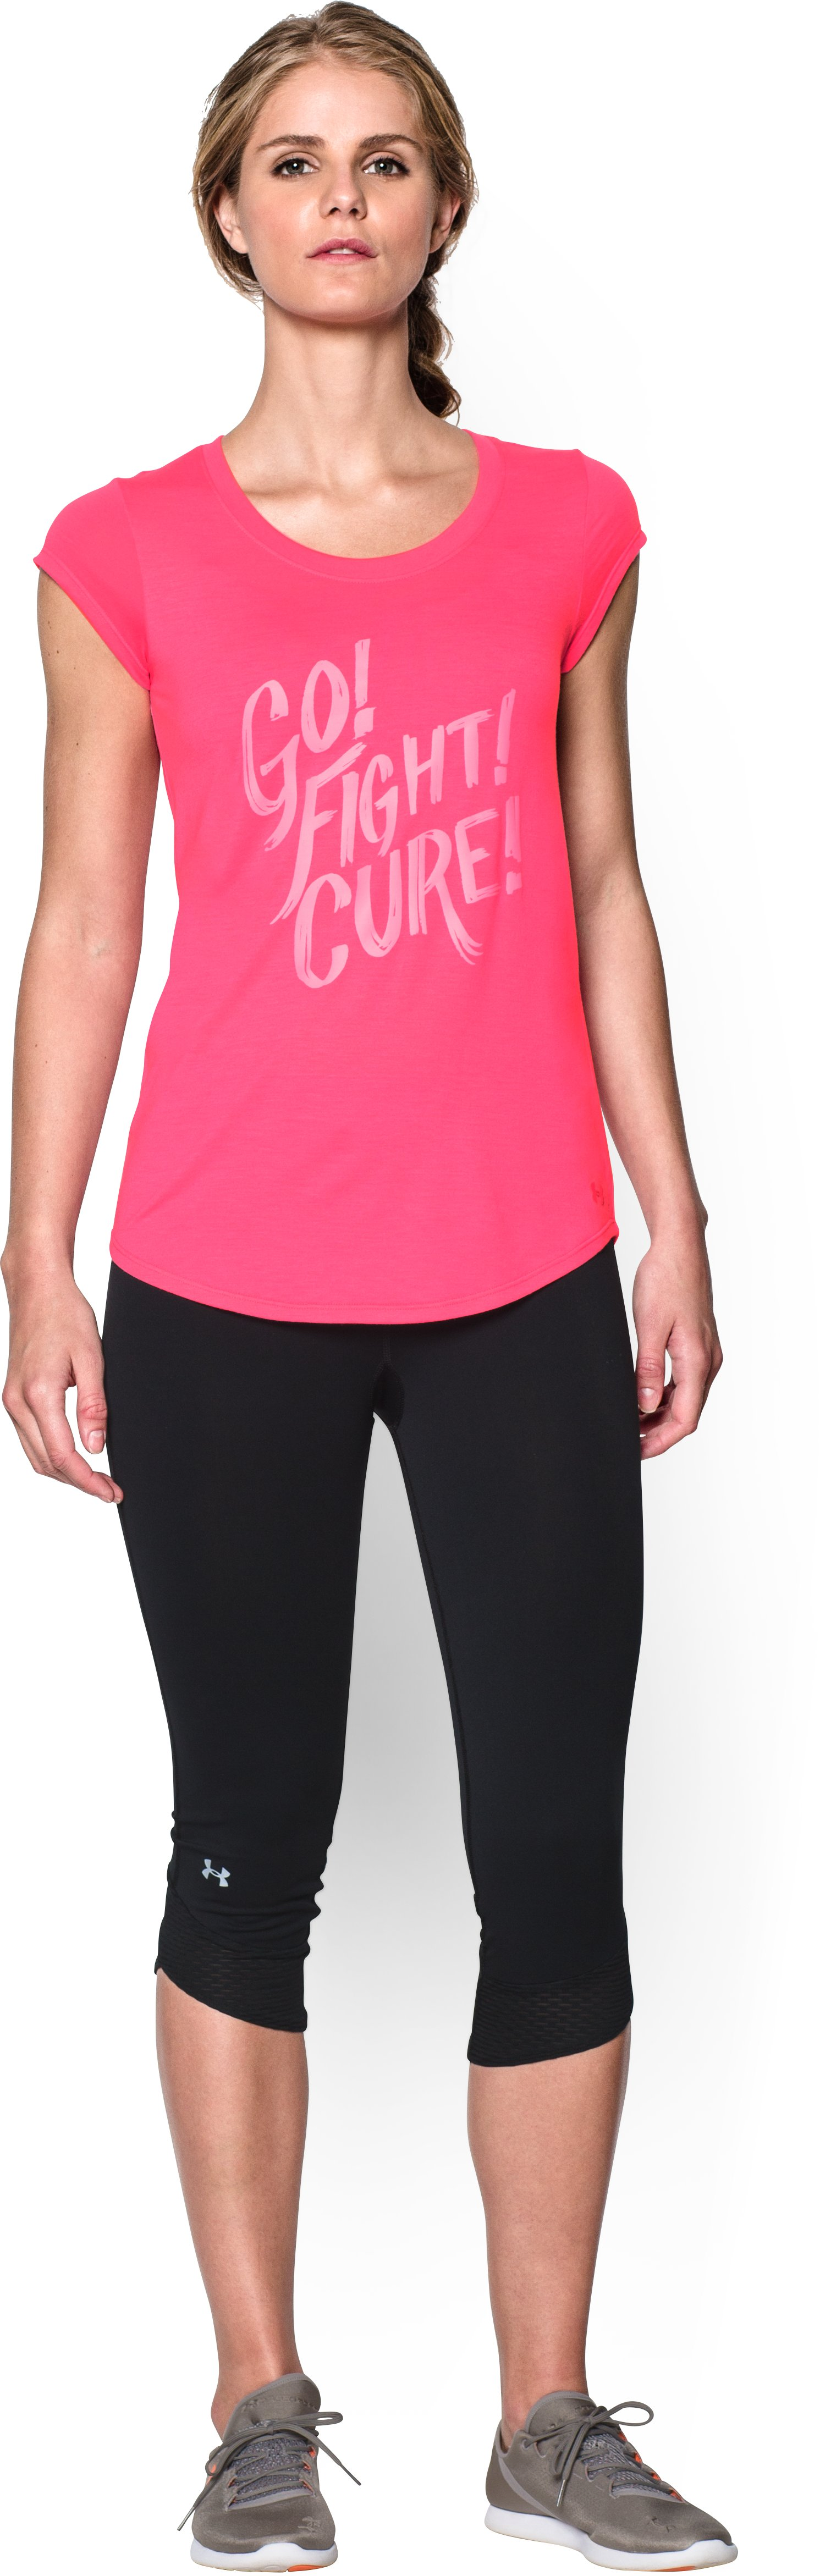 Women's UA Power In Pink® Go Fight Cure T-Shirt, Cerise